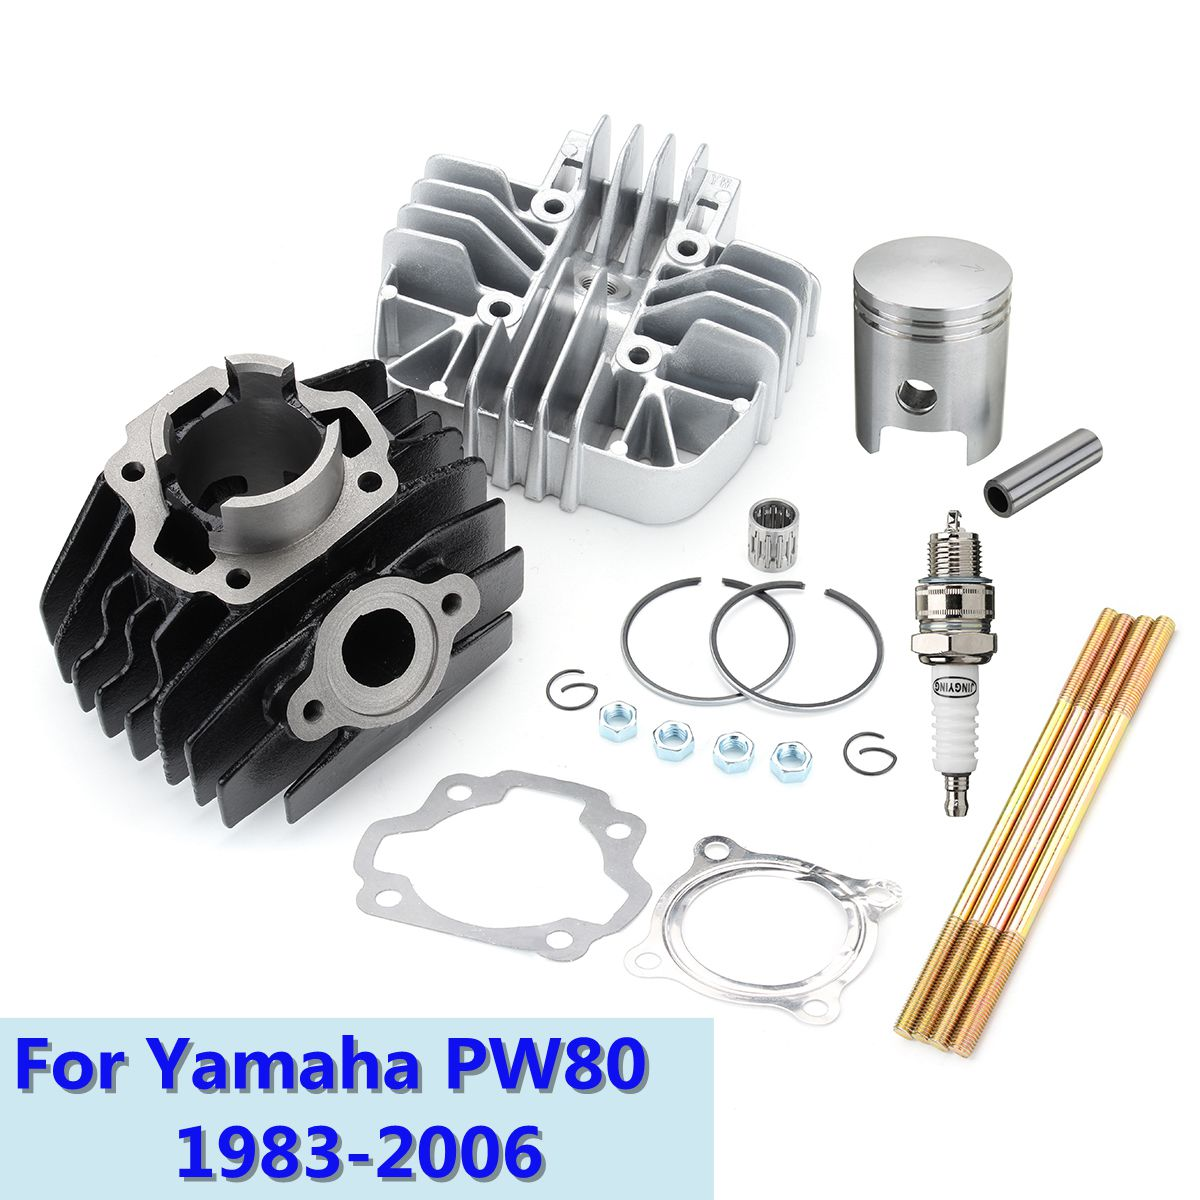 Cylinder Piston Engine Head Gasket Clip Top End Kit for Yamaha PW80 1983-2006 Motor Engine